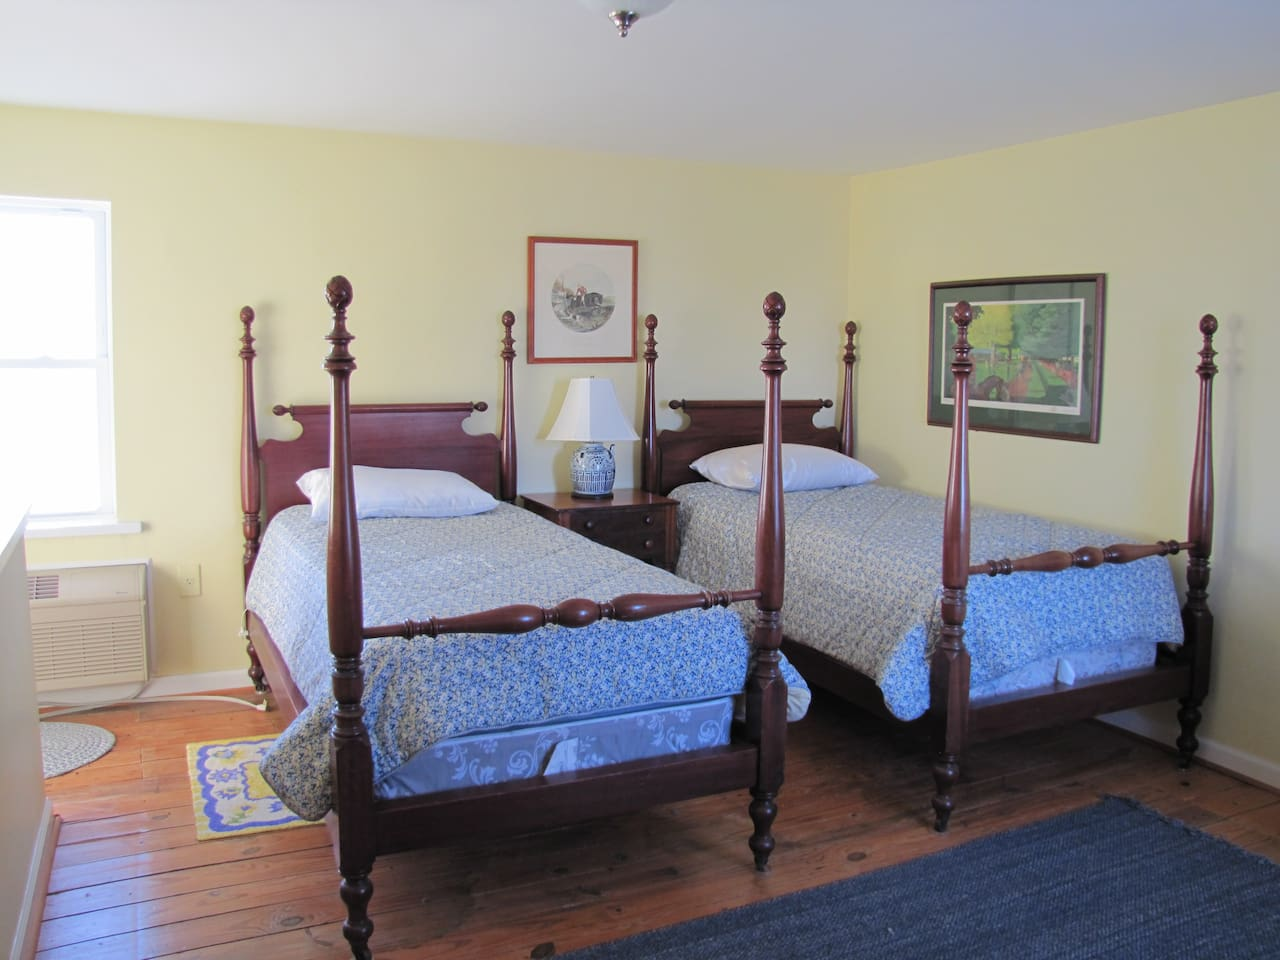 Twin beds set up.